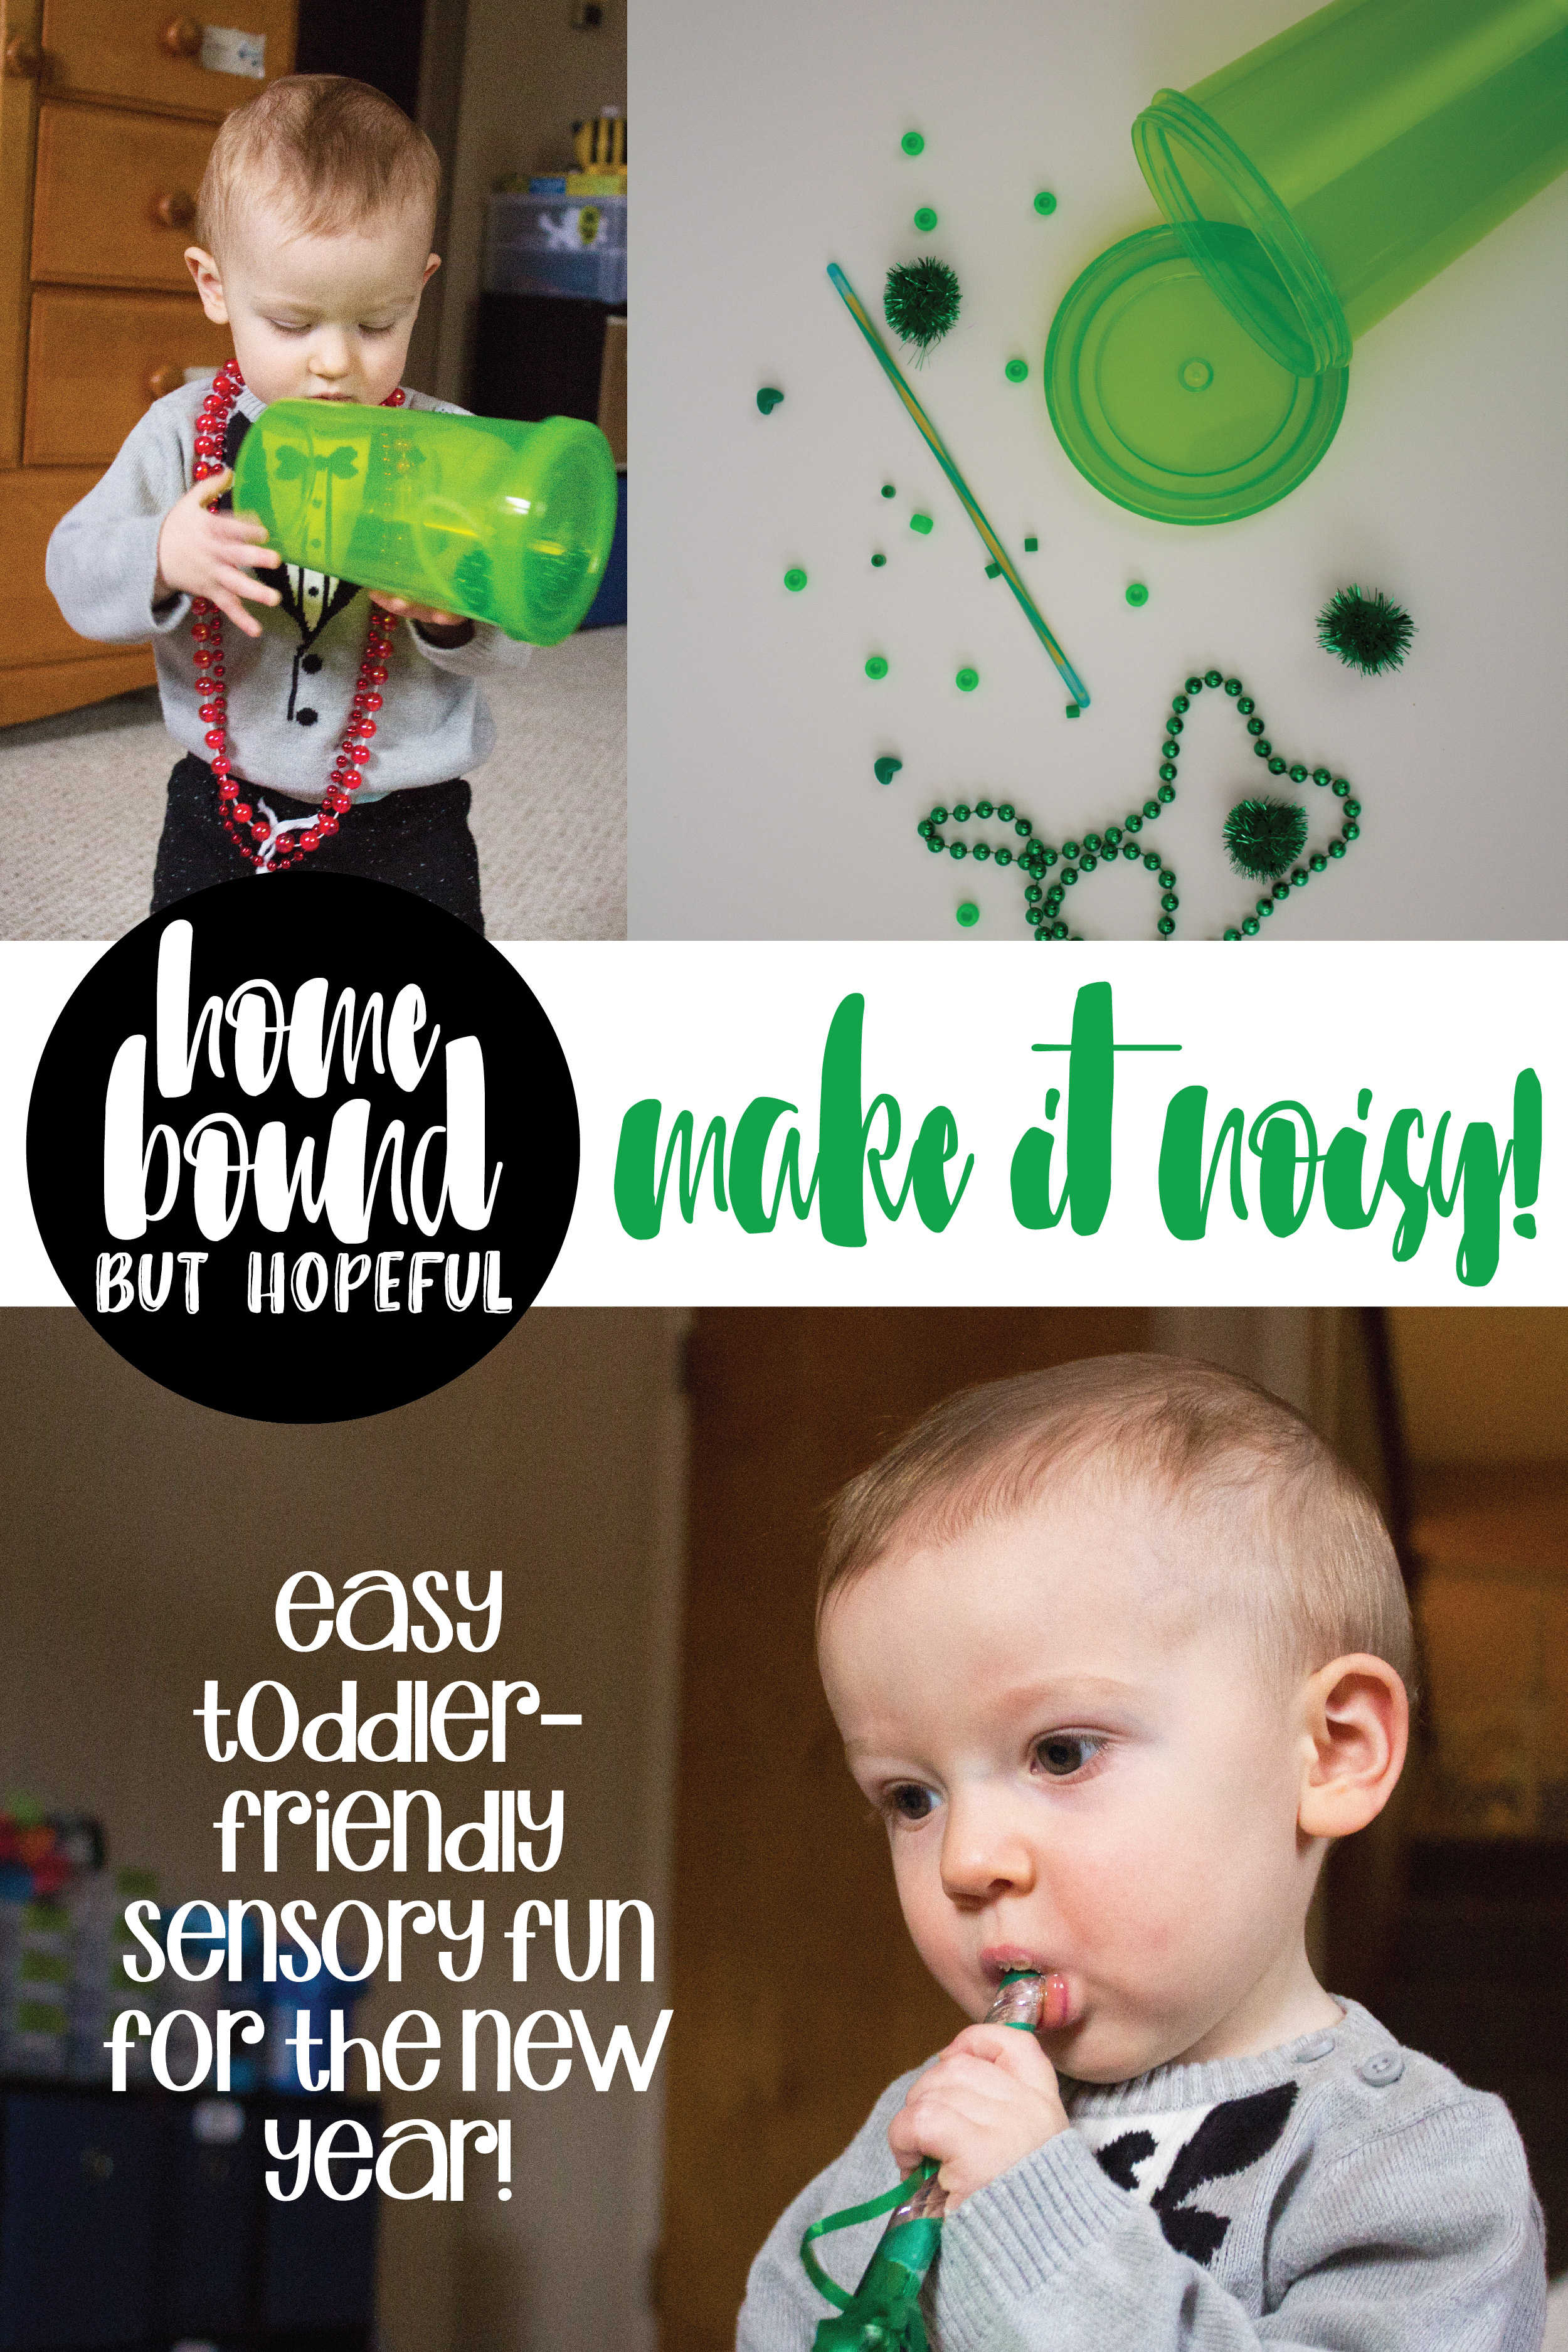 We put together a super simple New Year's sensory playkit for my toddler- you can quickly adapt this idea to any holiday and have some noisy fun together!